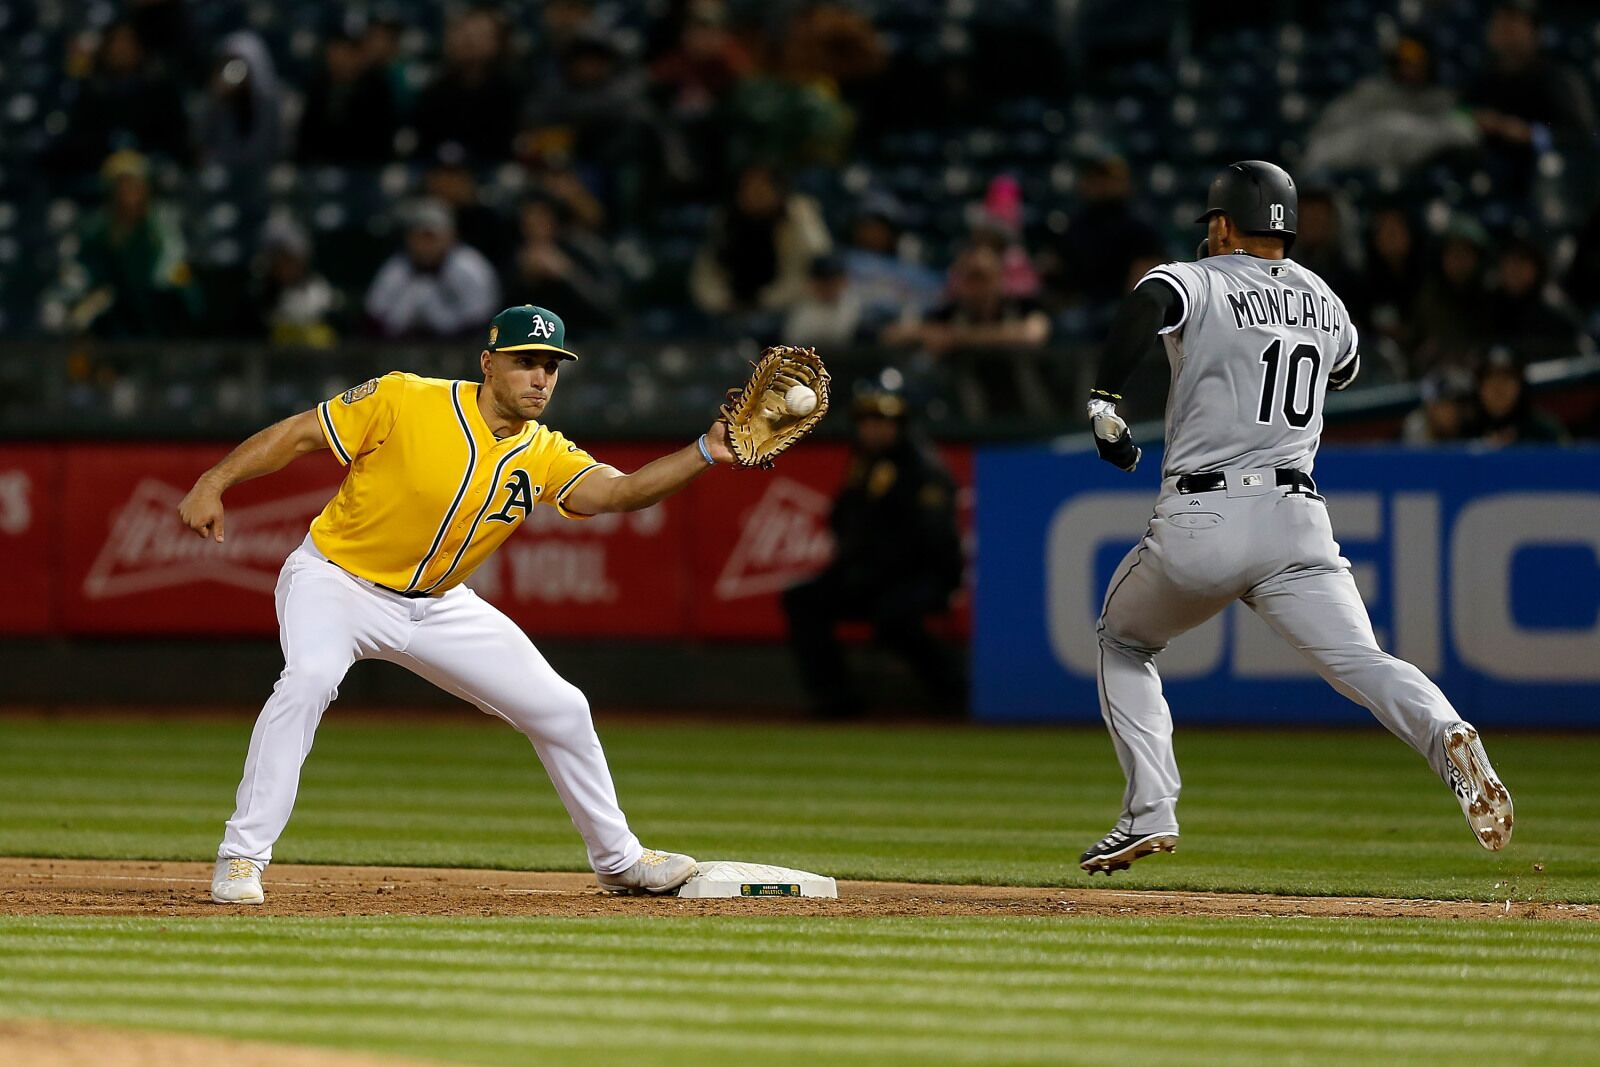 947269840-chicago-white-sox-v-oakland-athletics.jpg